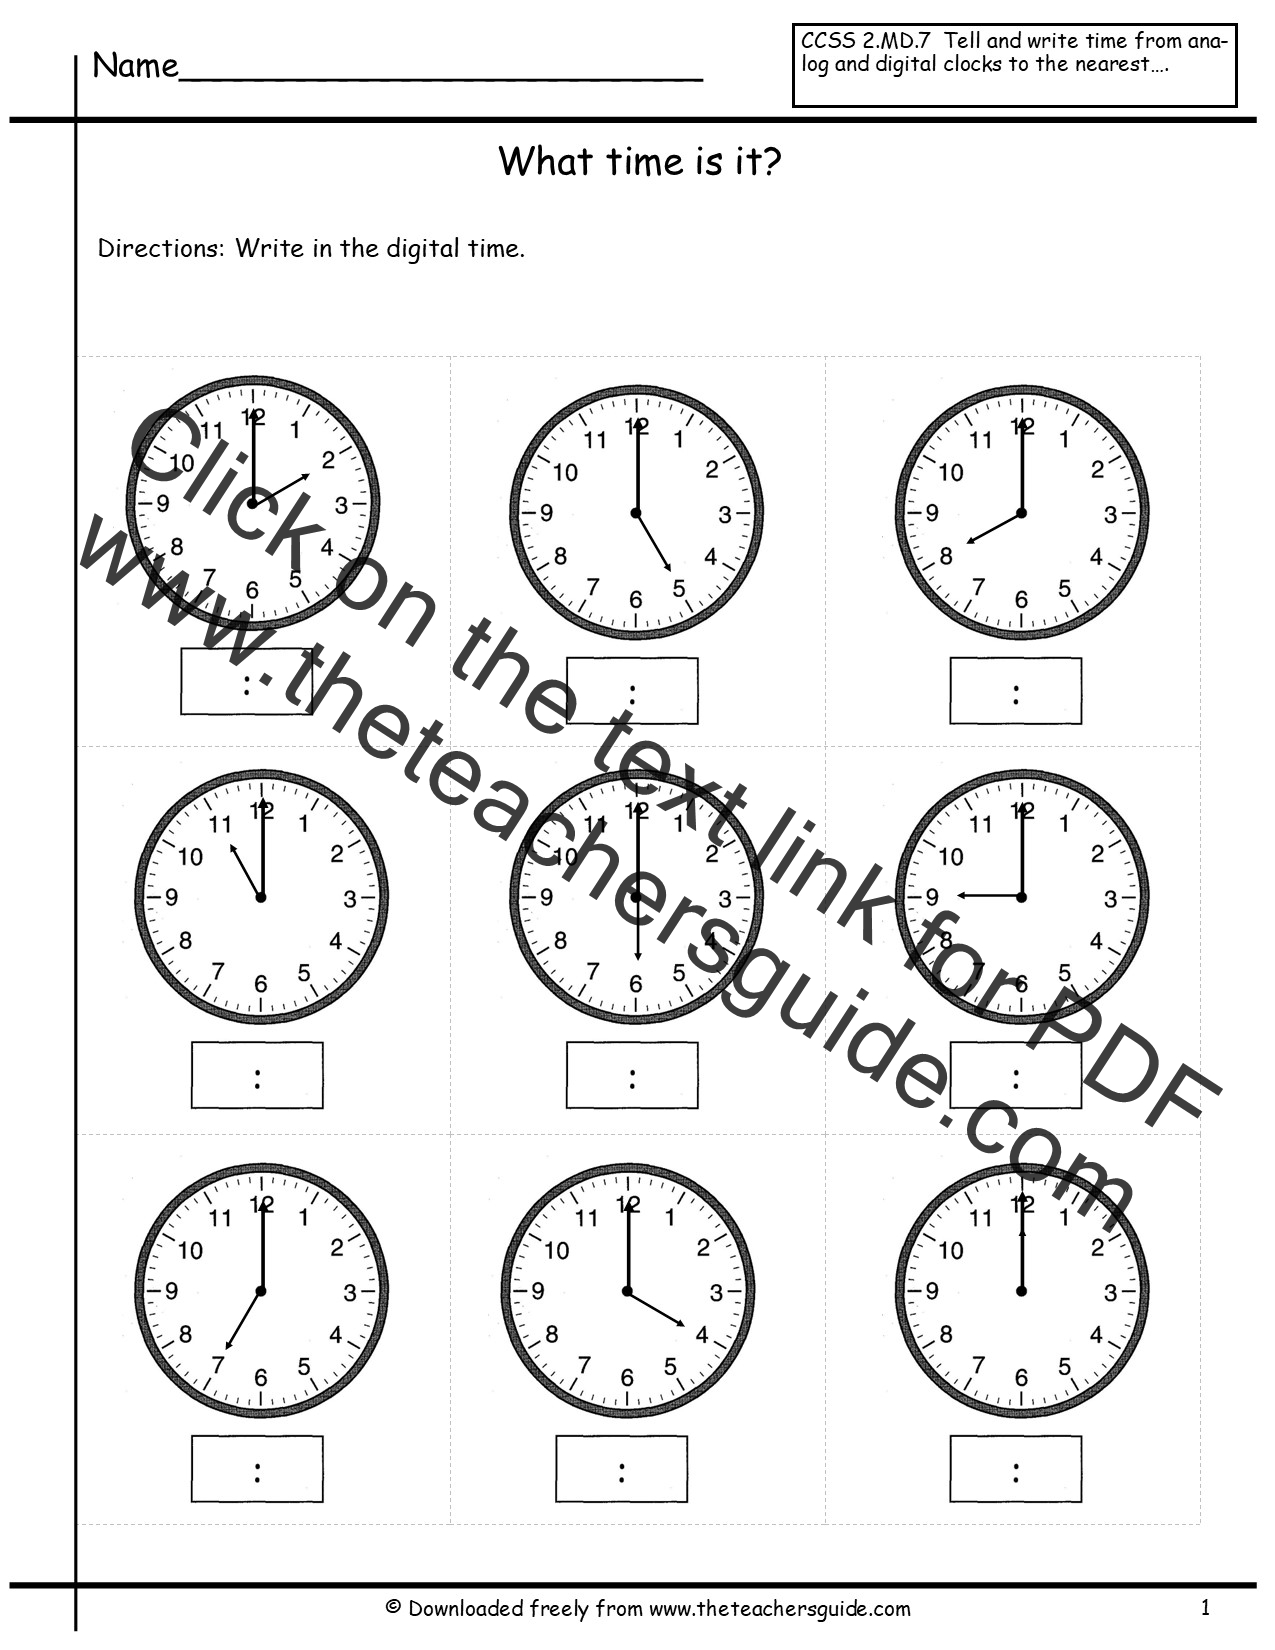 Worksheets Time Telling Worksheets telling time worksheets from the teachers guide to nearest hour worksheet 2